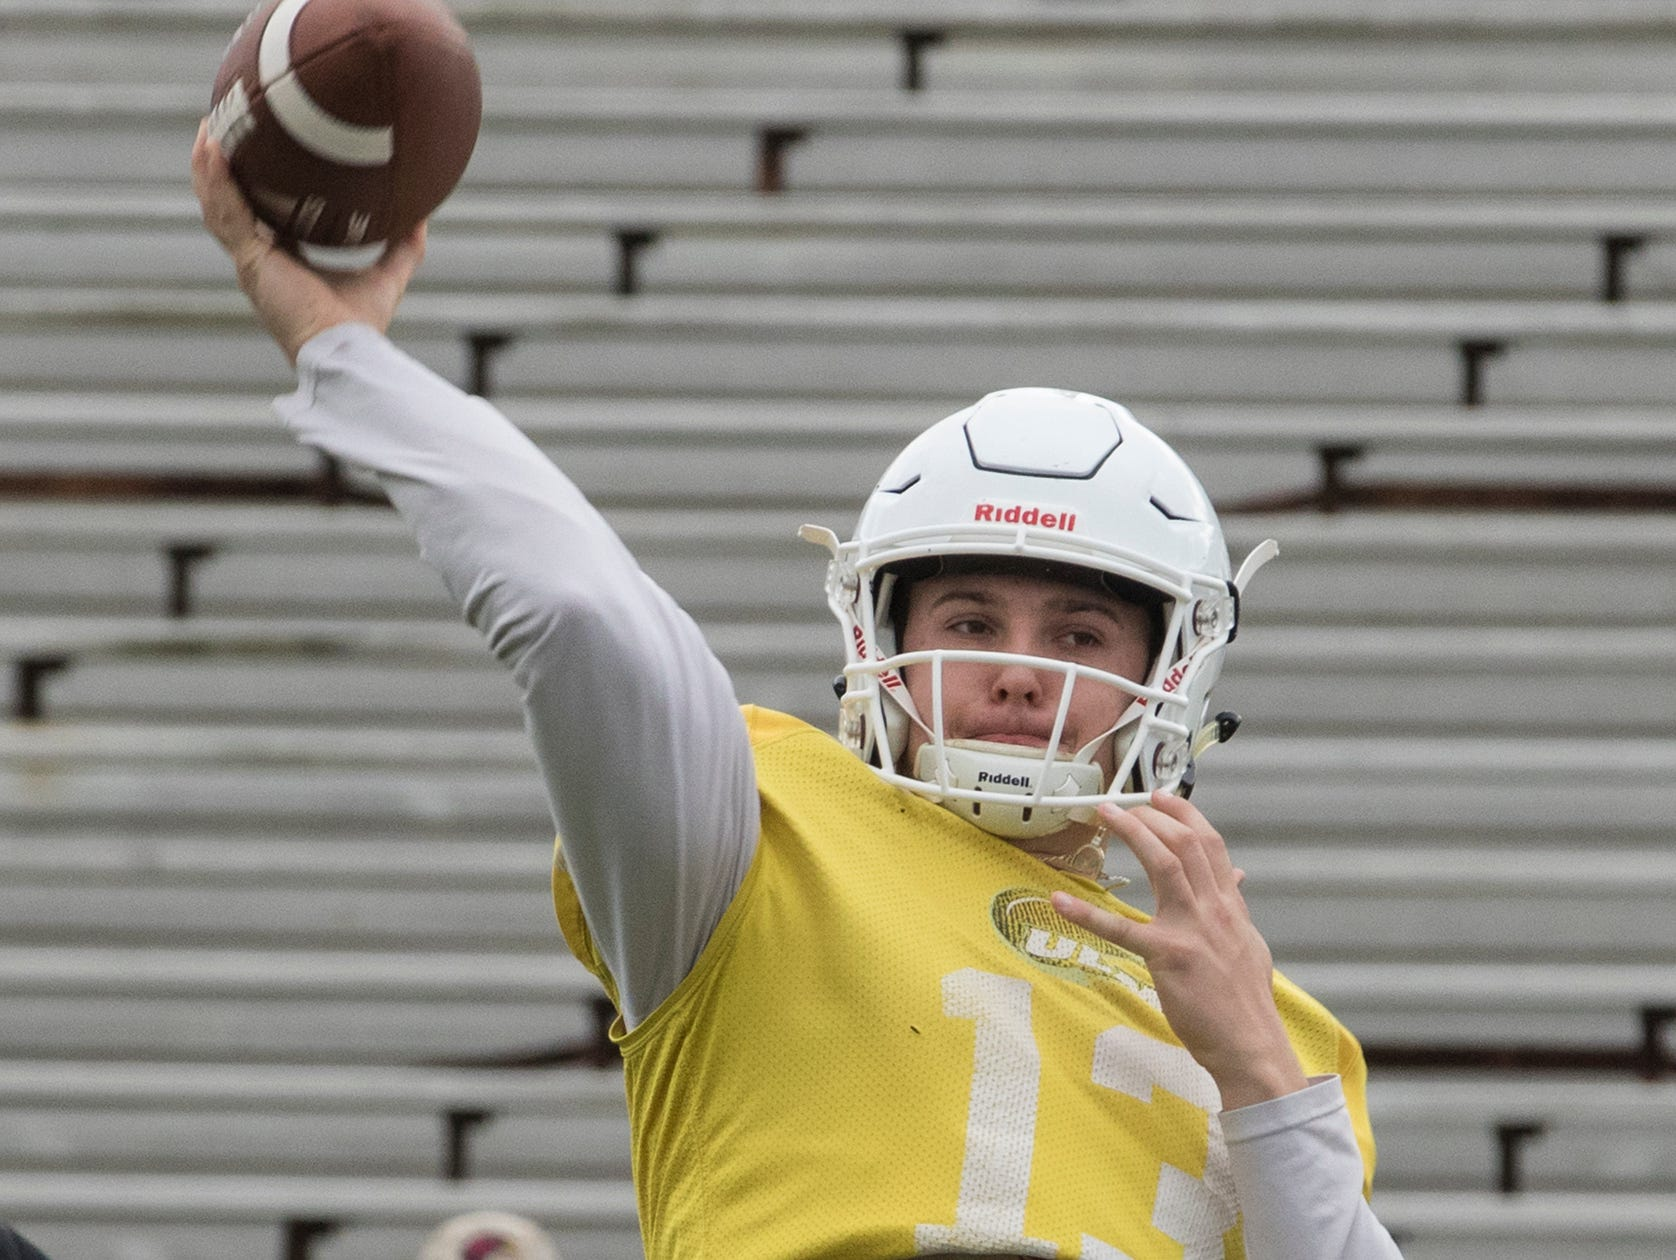 University of Louisiana at Monroe held its Spring Scrimmage at Malone Stadium in Monroe, La. on March 30.